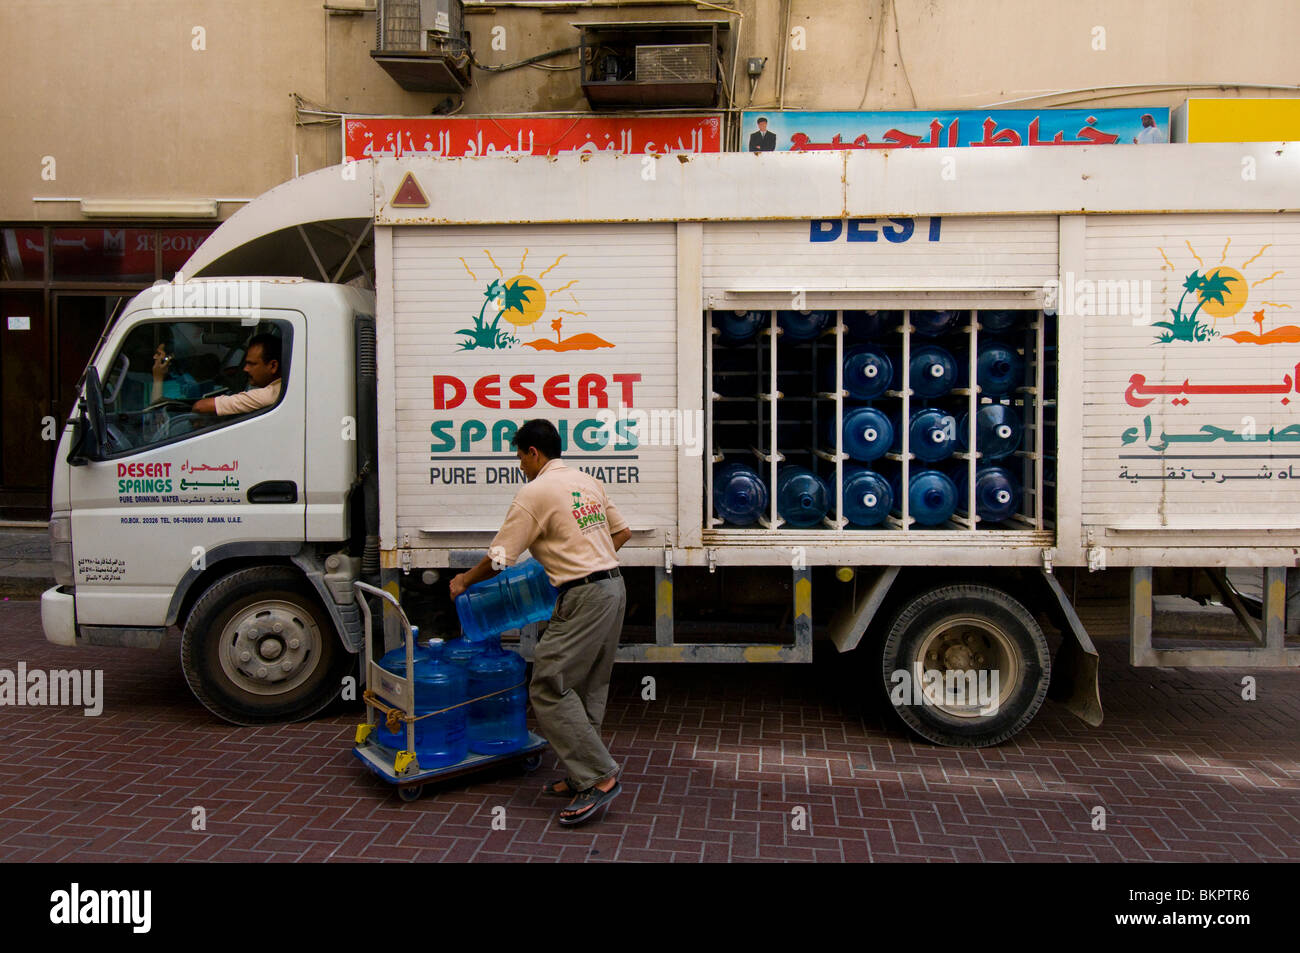 Mineral water delivery Dubai - Stock Image